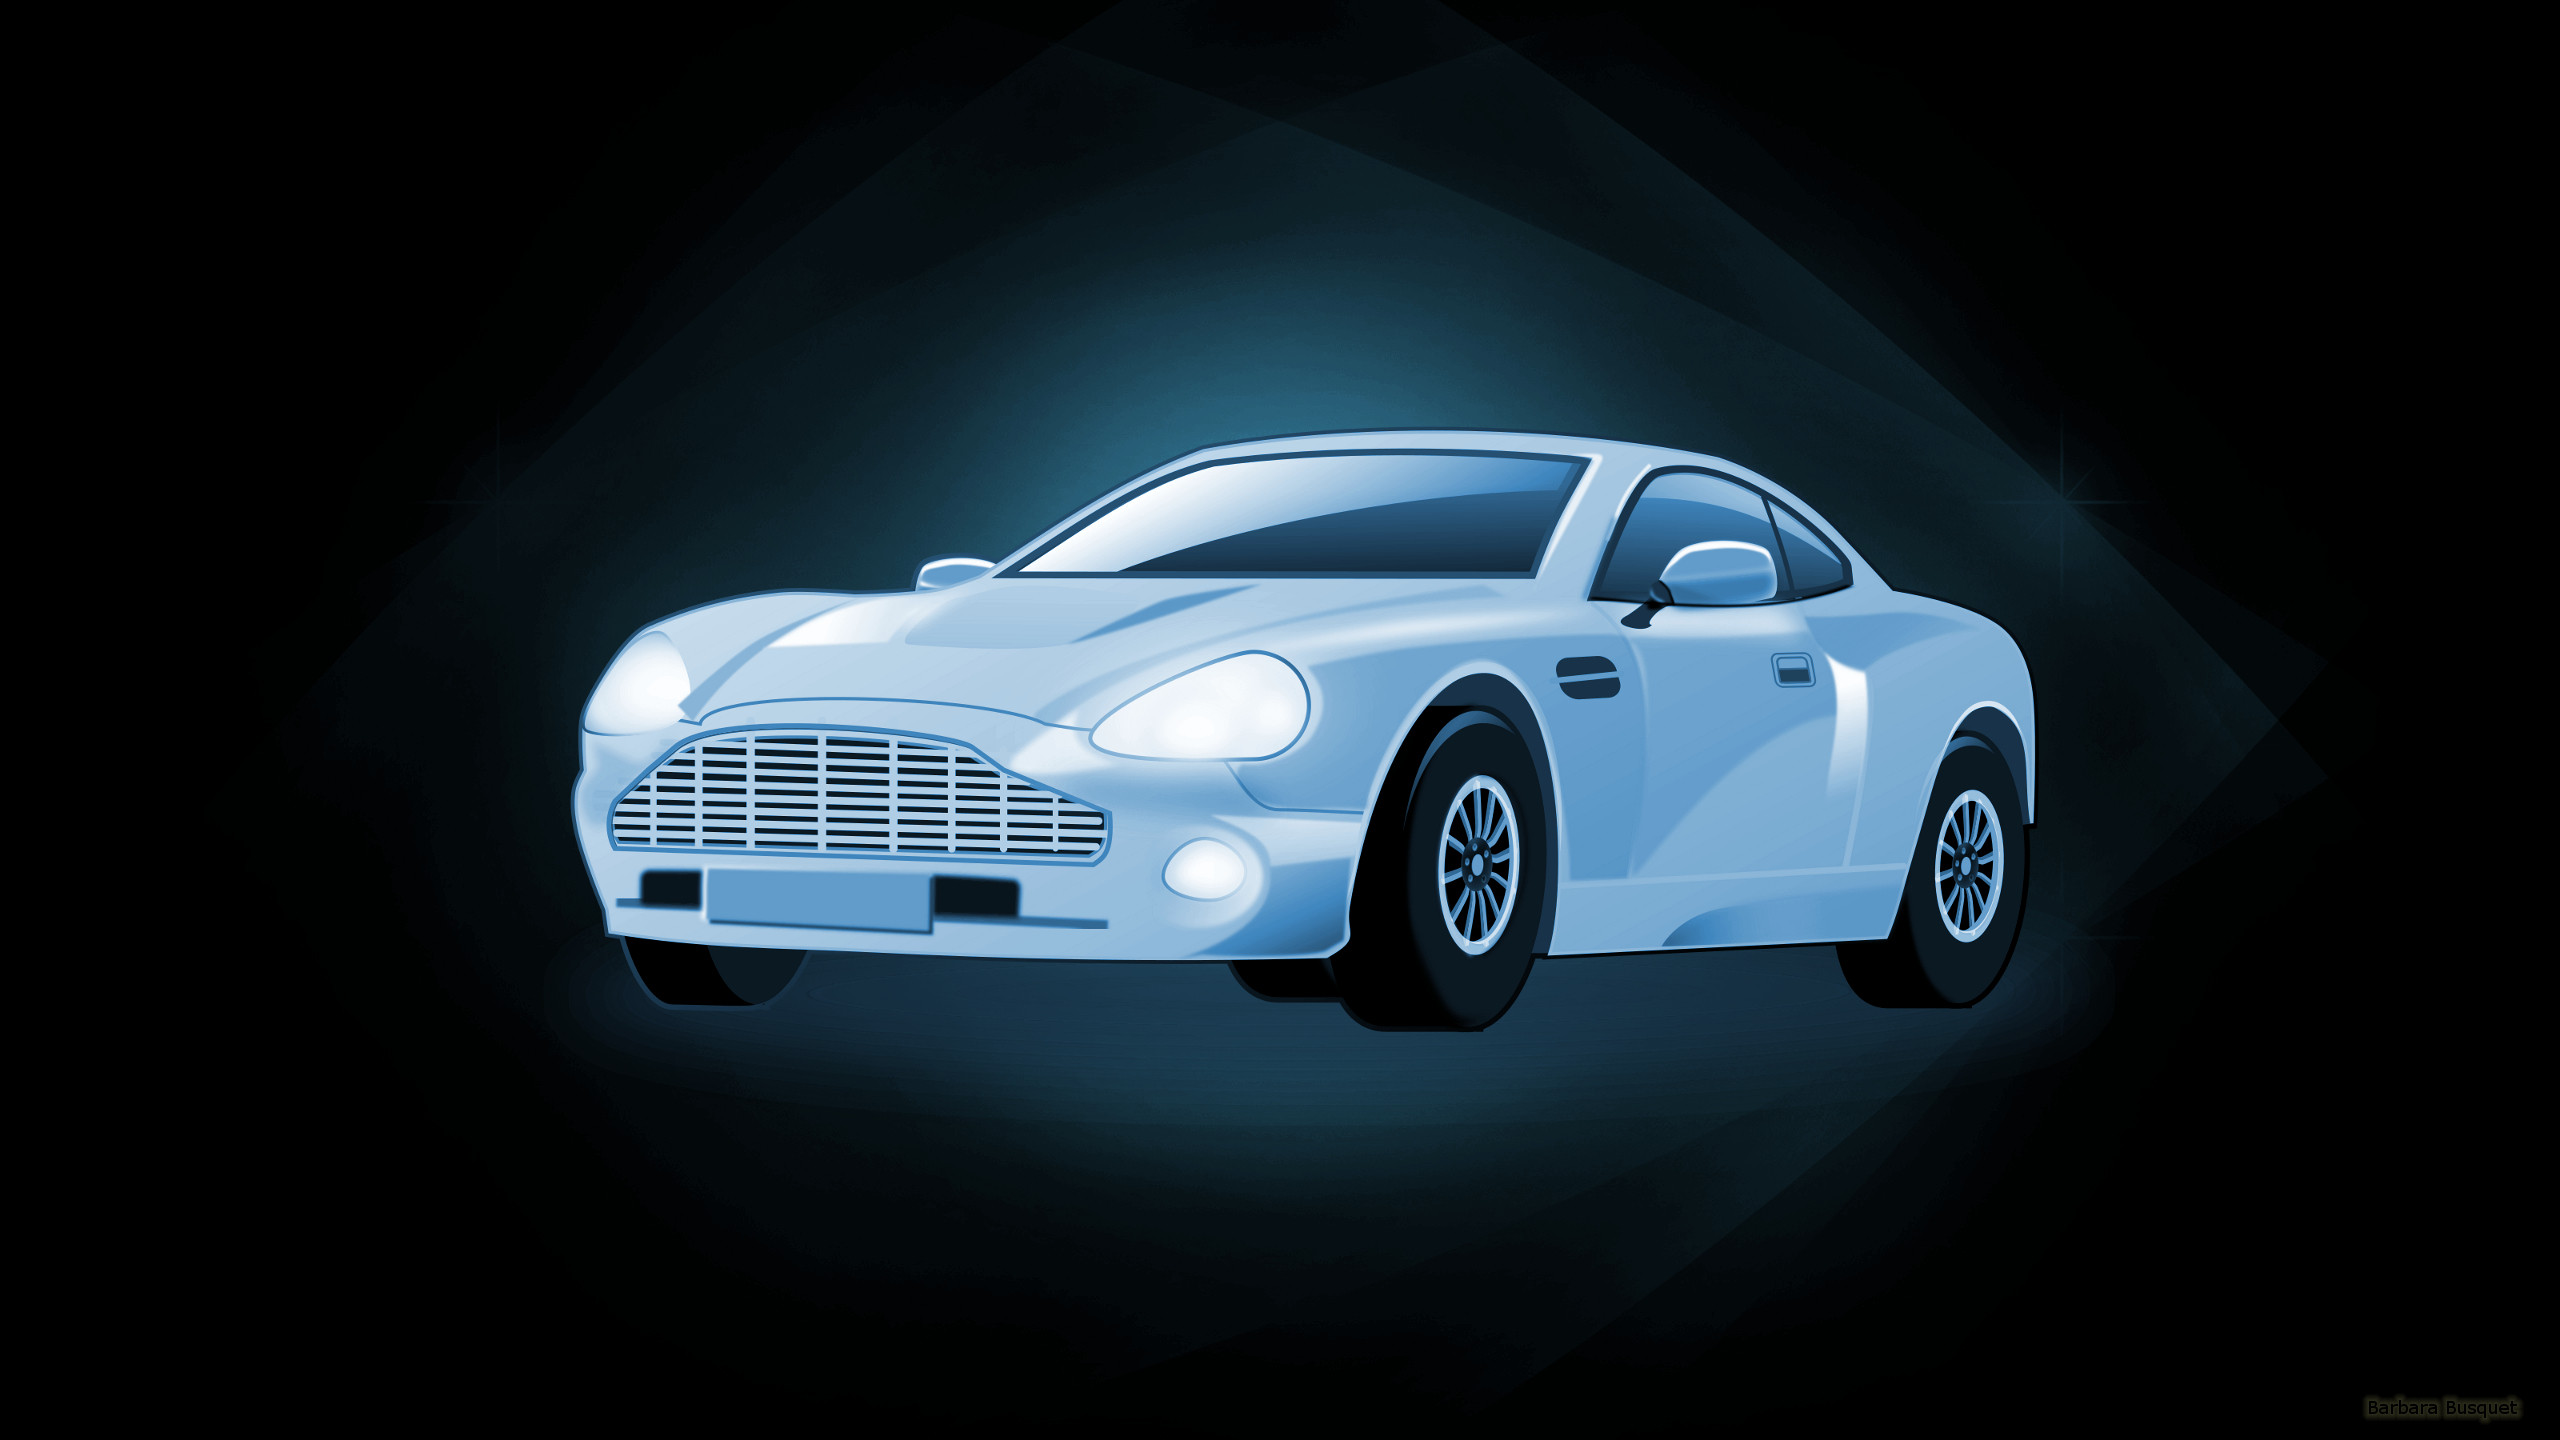 Cars Wallpapers Barbaras Hd Wallpapers